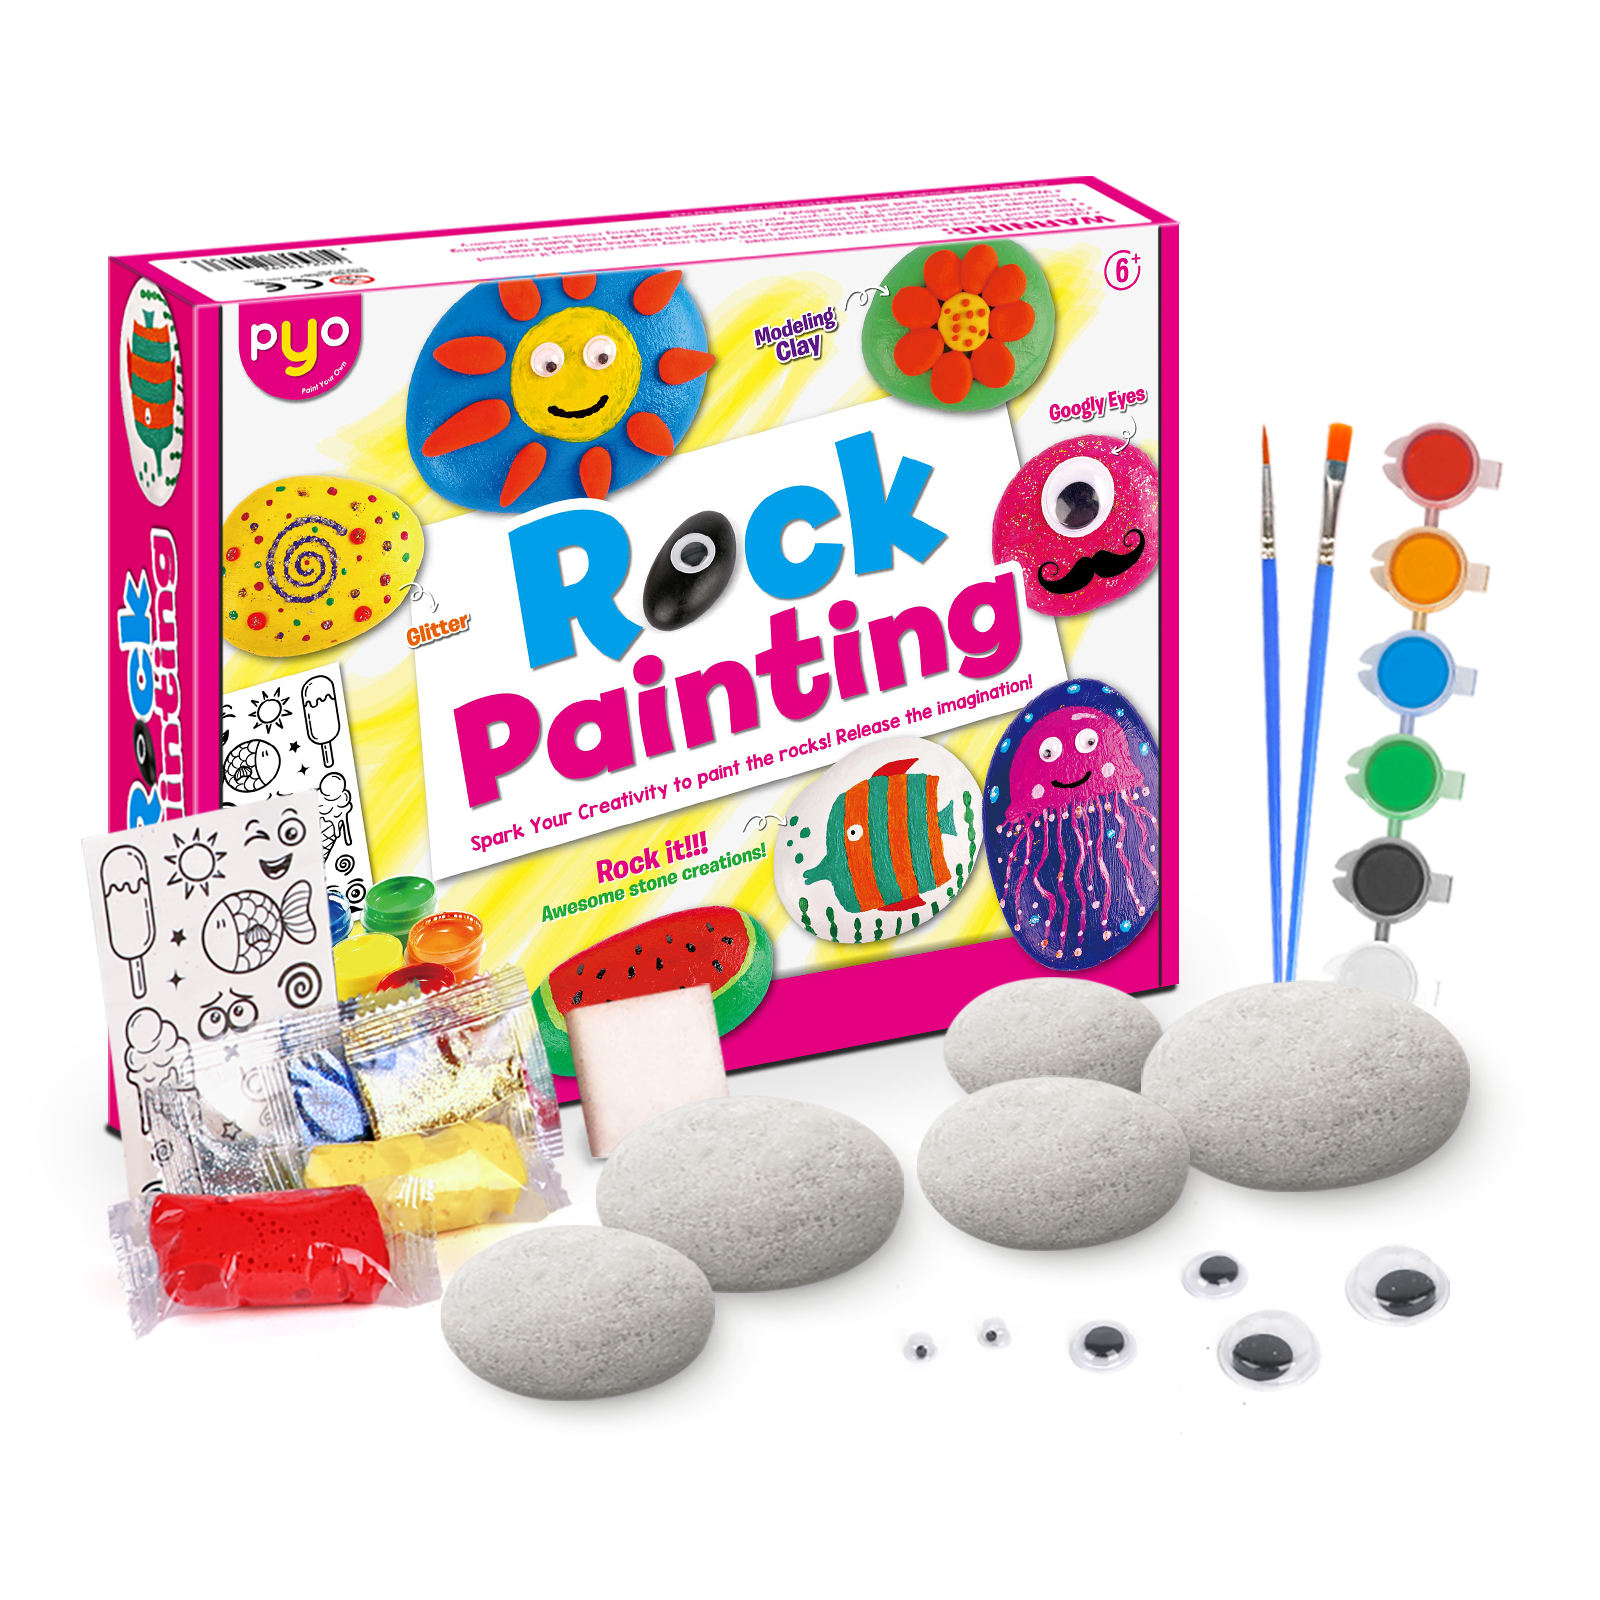 2020 Amazon hot sell Paint Your Own Children Diy Arts And Crafts Sets For Kids Rock Painting Kits Other Toys for kids